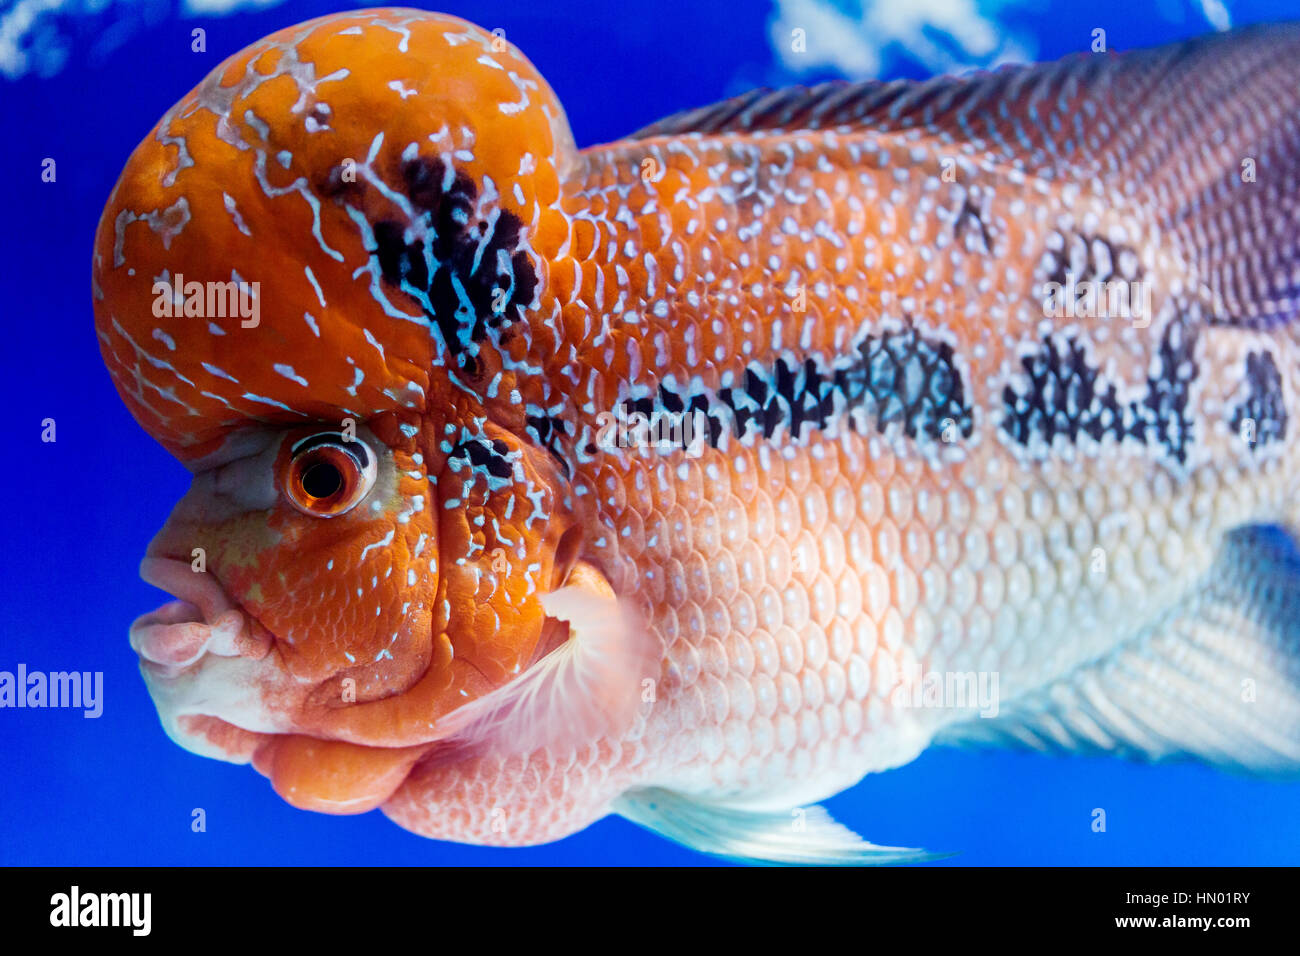 flowerhorn cichlid stock photos & flowerhorn cichlid stock images